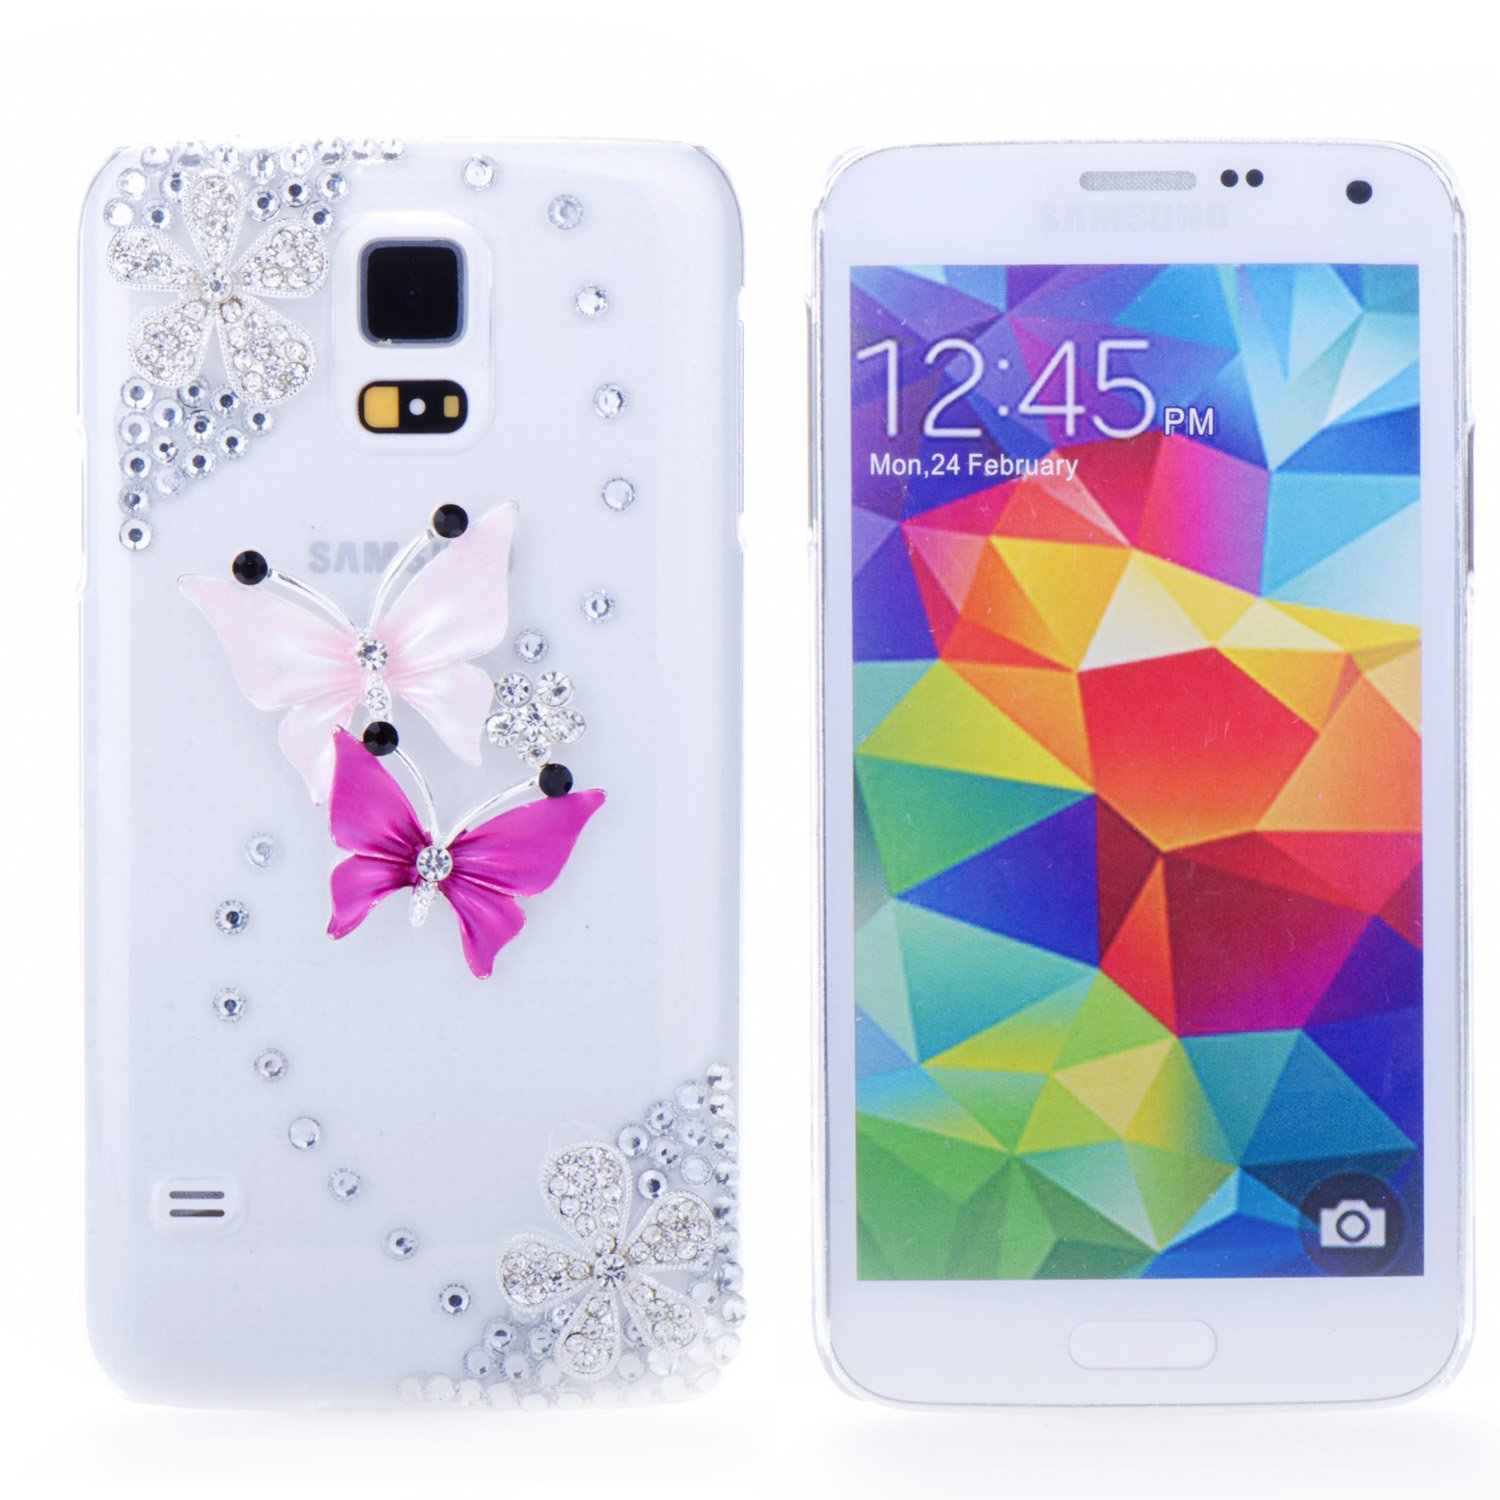 Handmade Bling 3D Double Butterfly with Silver Rhinestone Flower Hard Case Cover for Samsung Galaxy S5 i9600 Transparent